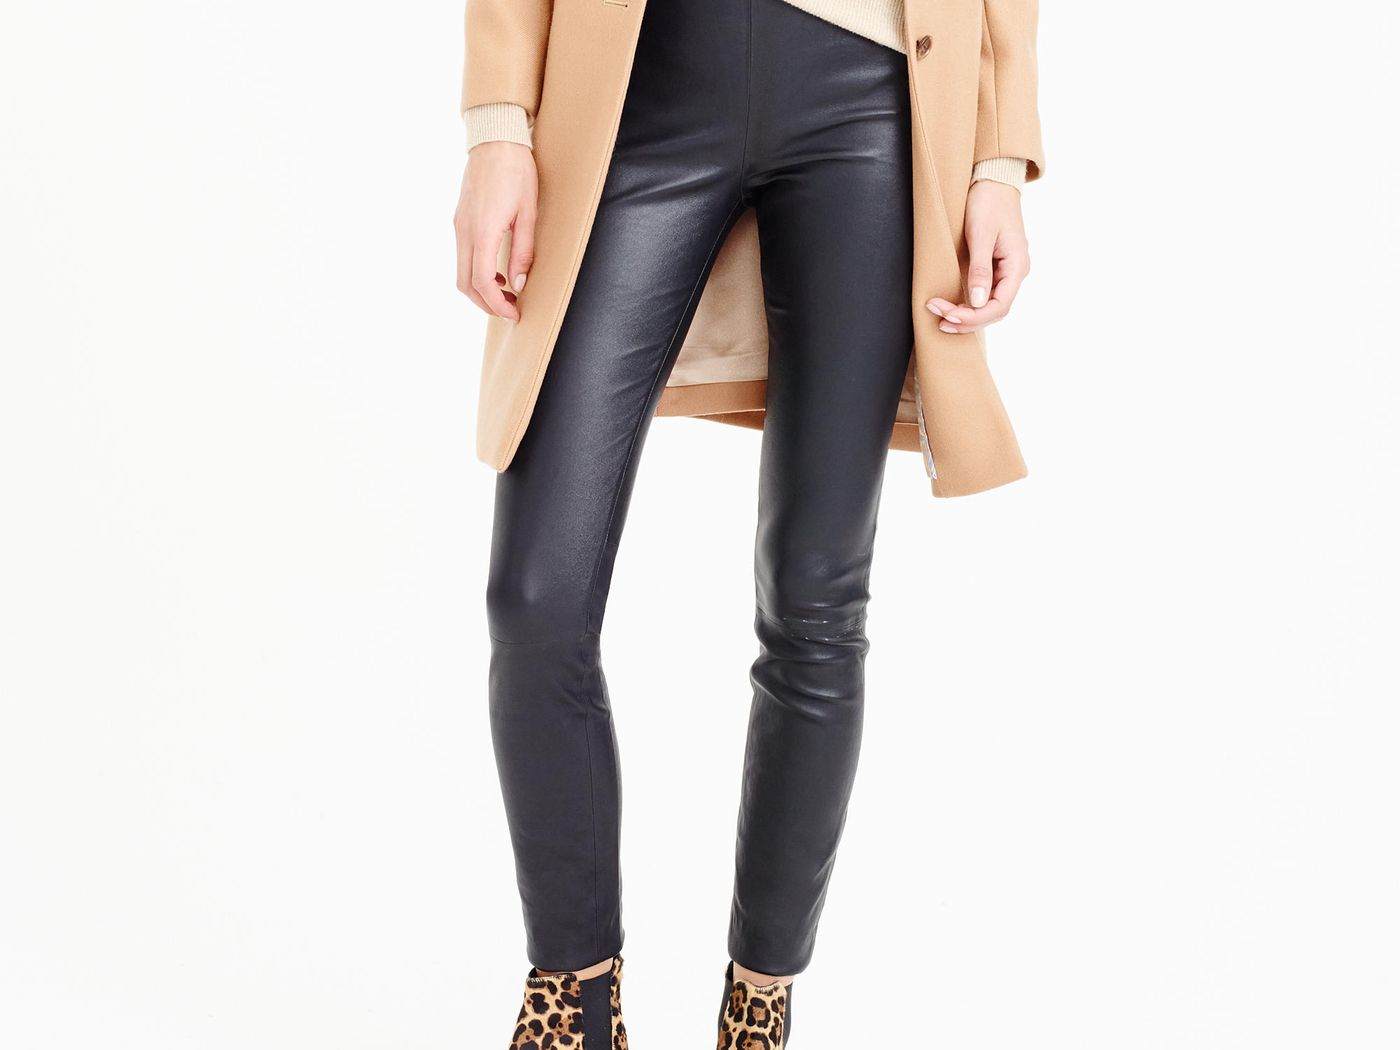 089f88a3d14885 Where Can I Find Leather (or Pleather!) Pants That Are Cheap But Good? -  Racked